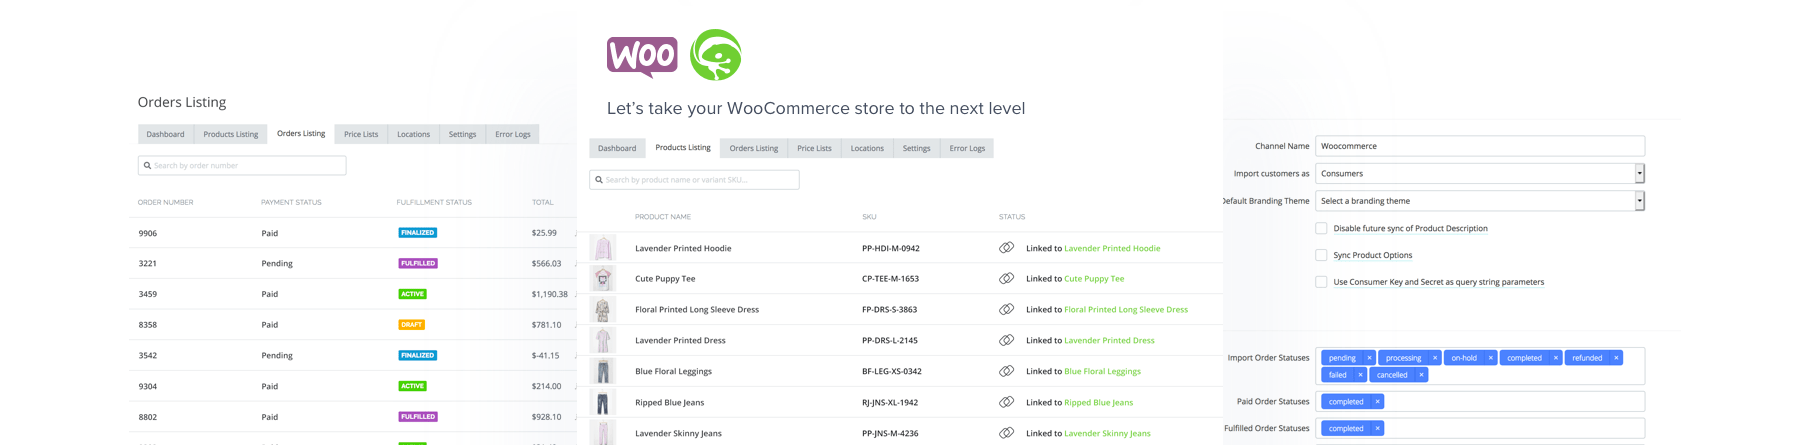 woocommerce-screens